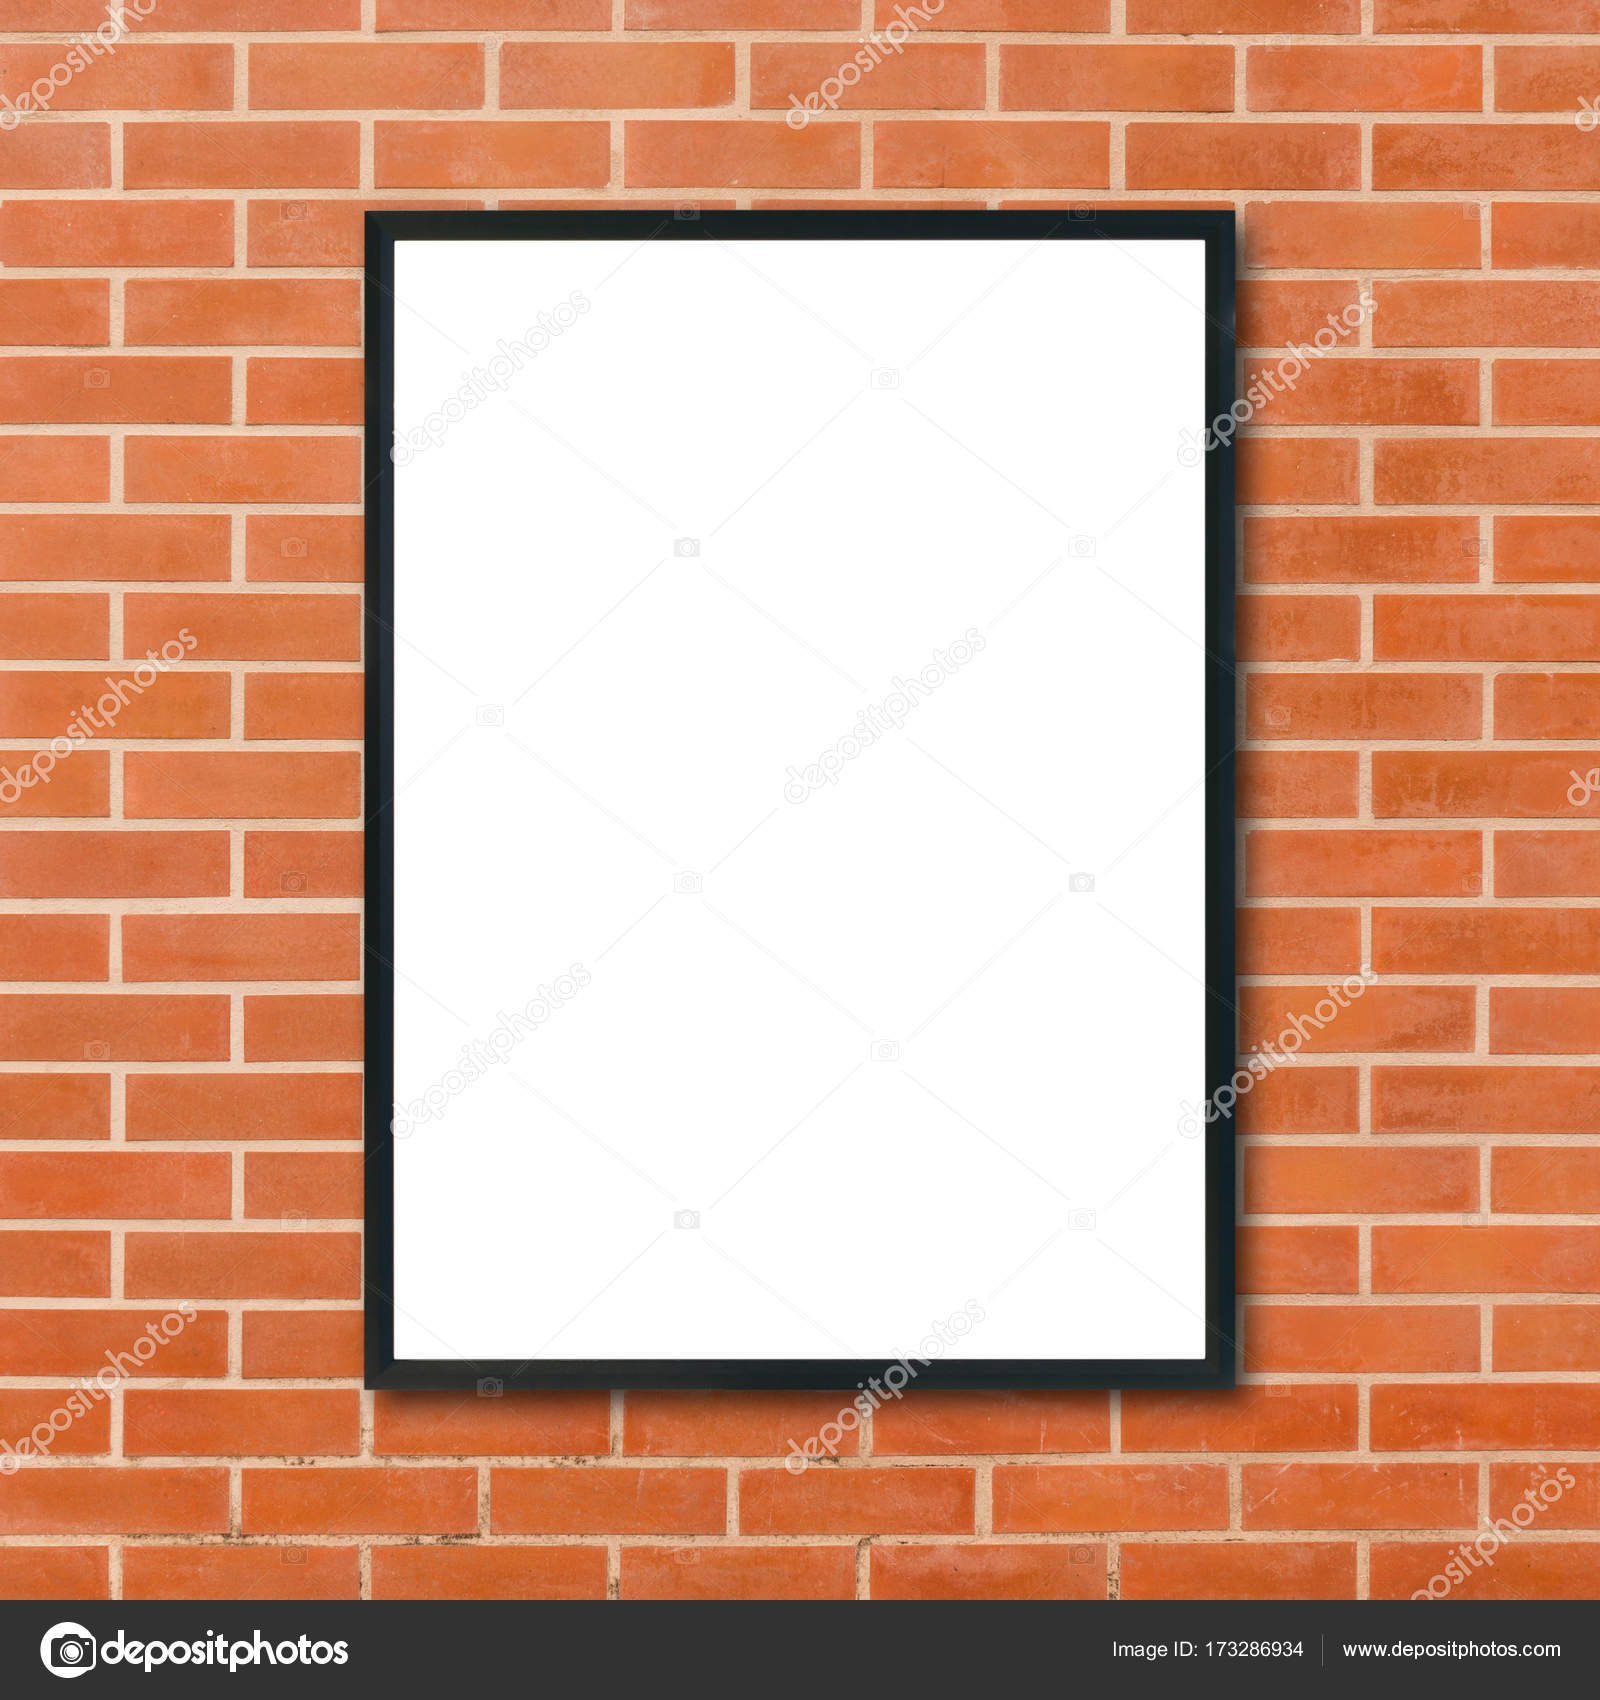 How To Hang A Painting On A Brick Wall